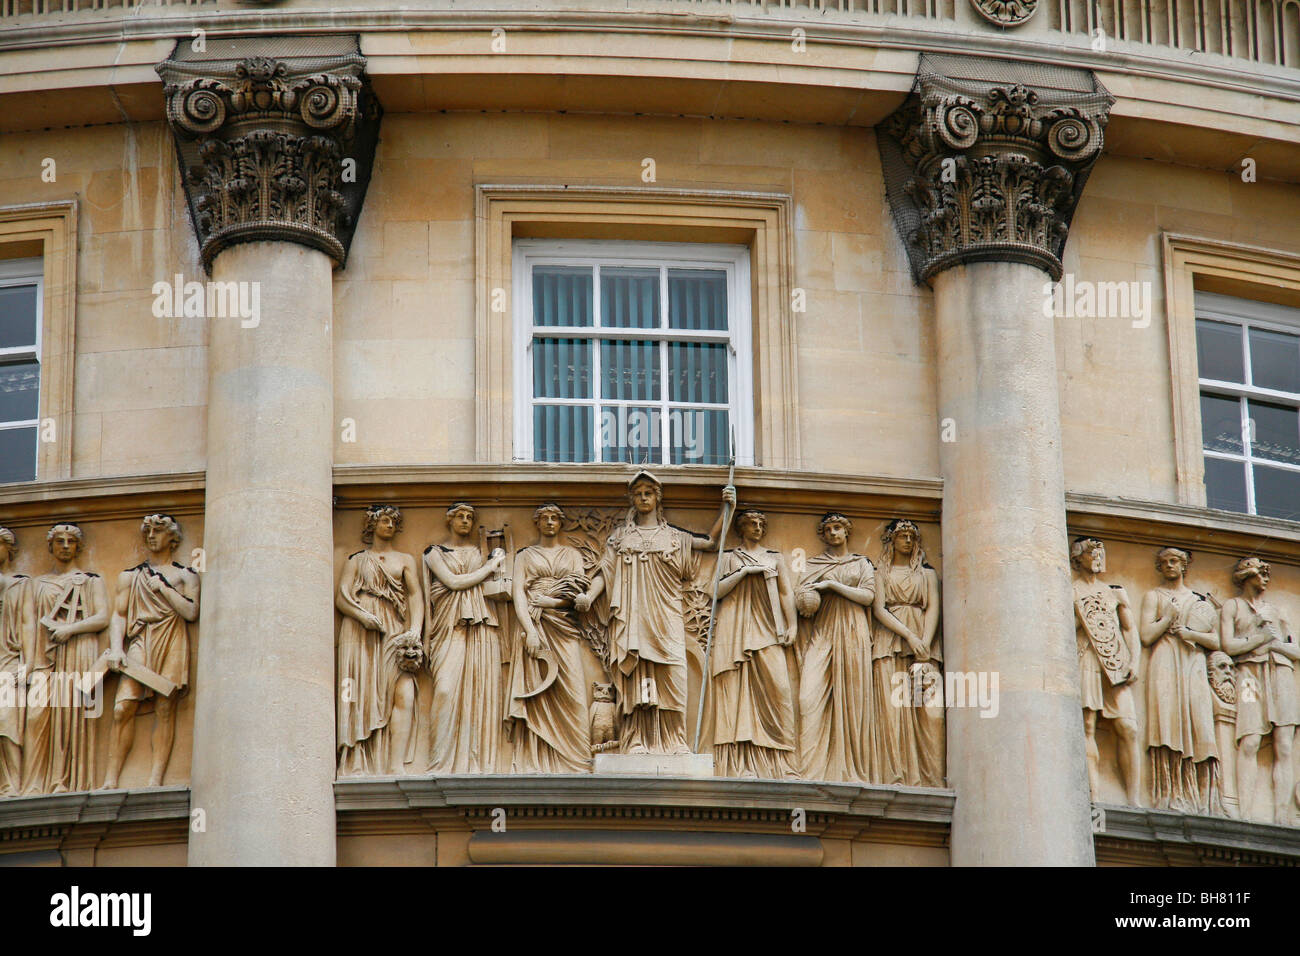 Architecture With Carved Stone Frieze And Columns On The Exterior Of Guildhall In Bath Somerset England